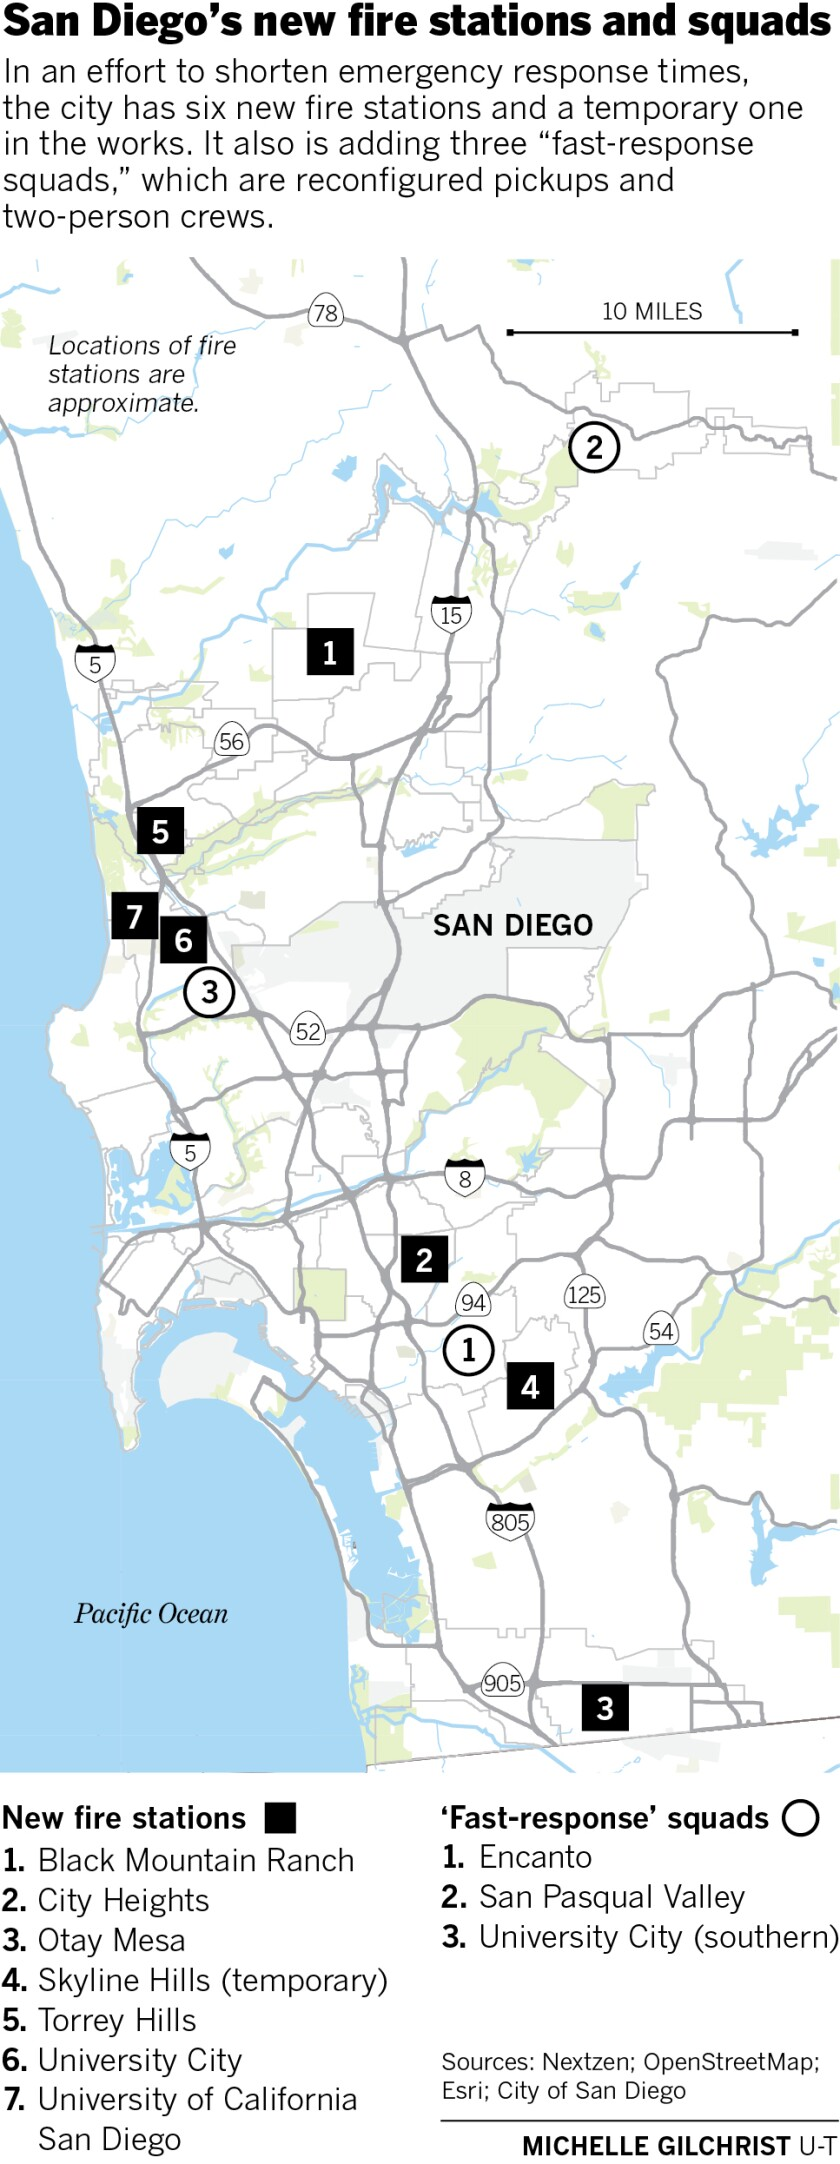 sd-me-g-fire-stations-locations-01.jpg